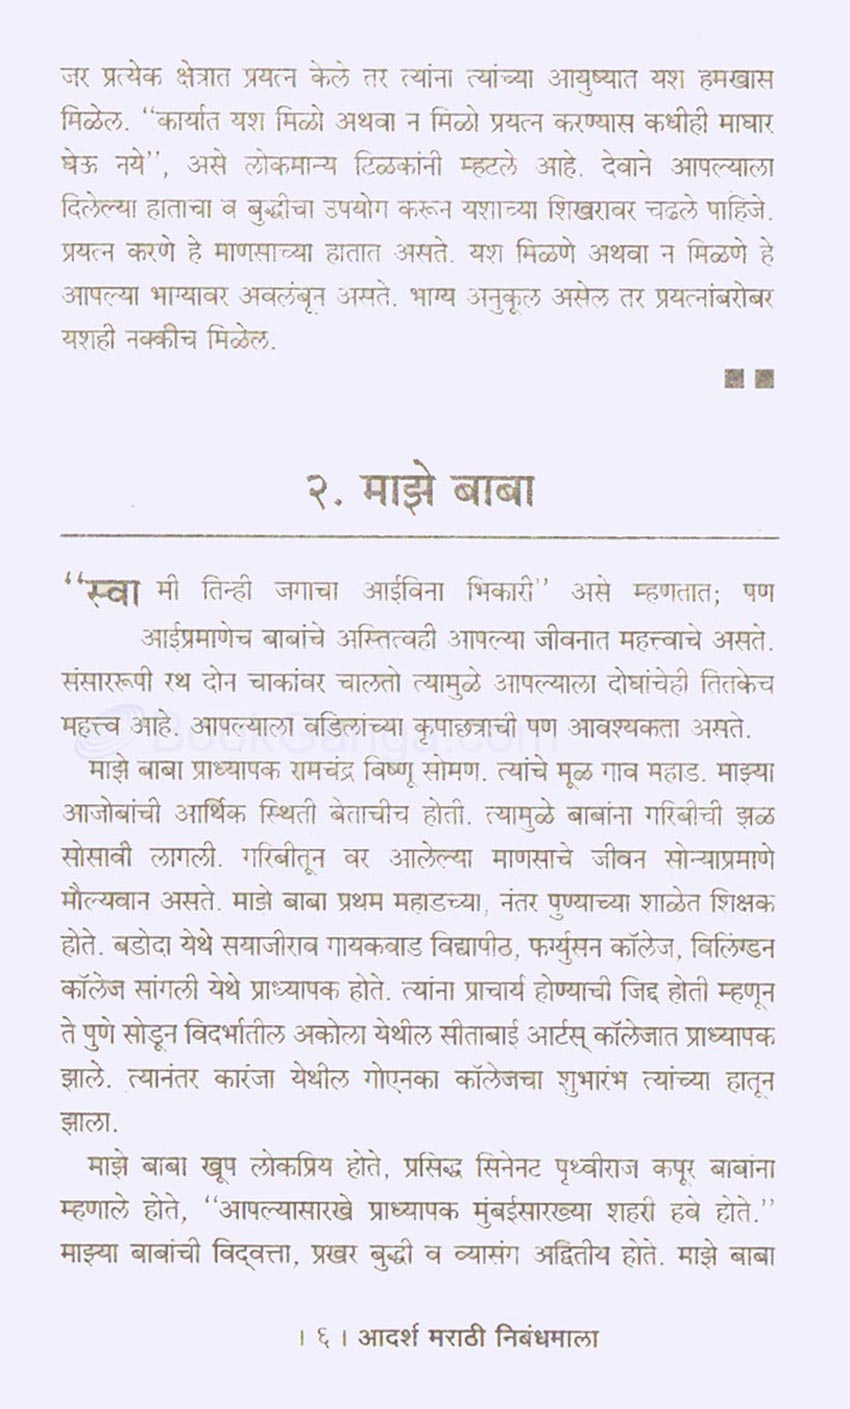 marathi essay book Essay | निबन्ध 66,497 views 1:15 हिन्दी निबंध - समय का महत्व | composition, essay, speech on the importance of time management - duration: 2 :56 pooja luthra 23,788 views 2:56 माझा अनुभव | maza anubhav | 6th std | marathi | english medium | maharashtra board | home revise.